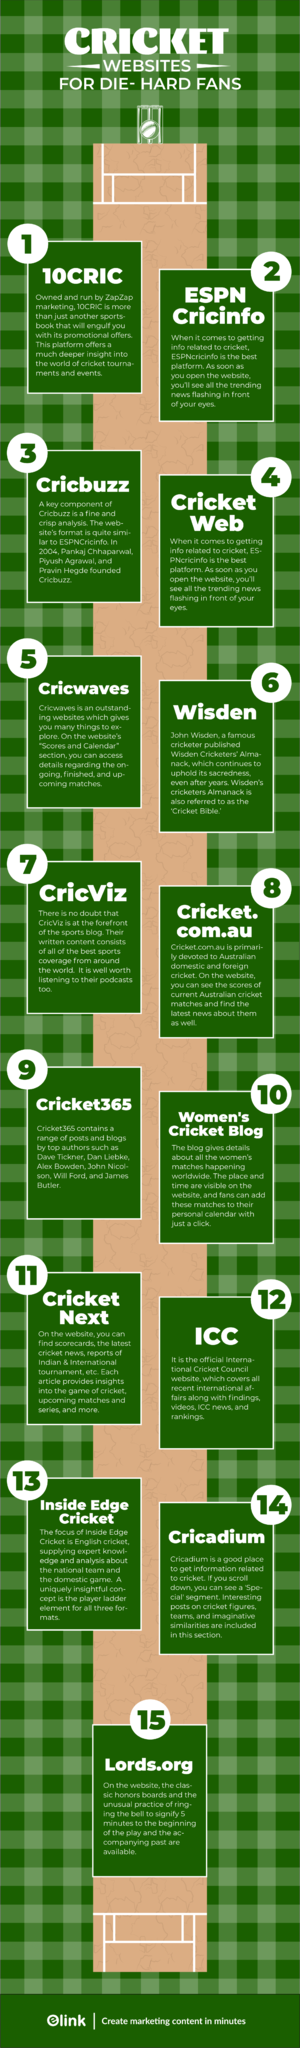 Cricket blogs and websites infographic